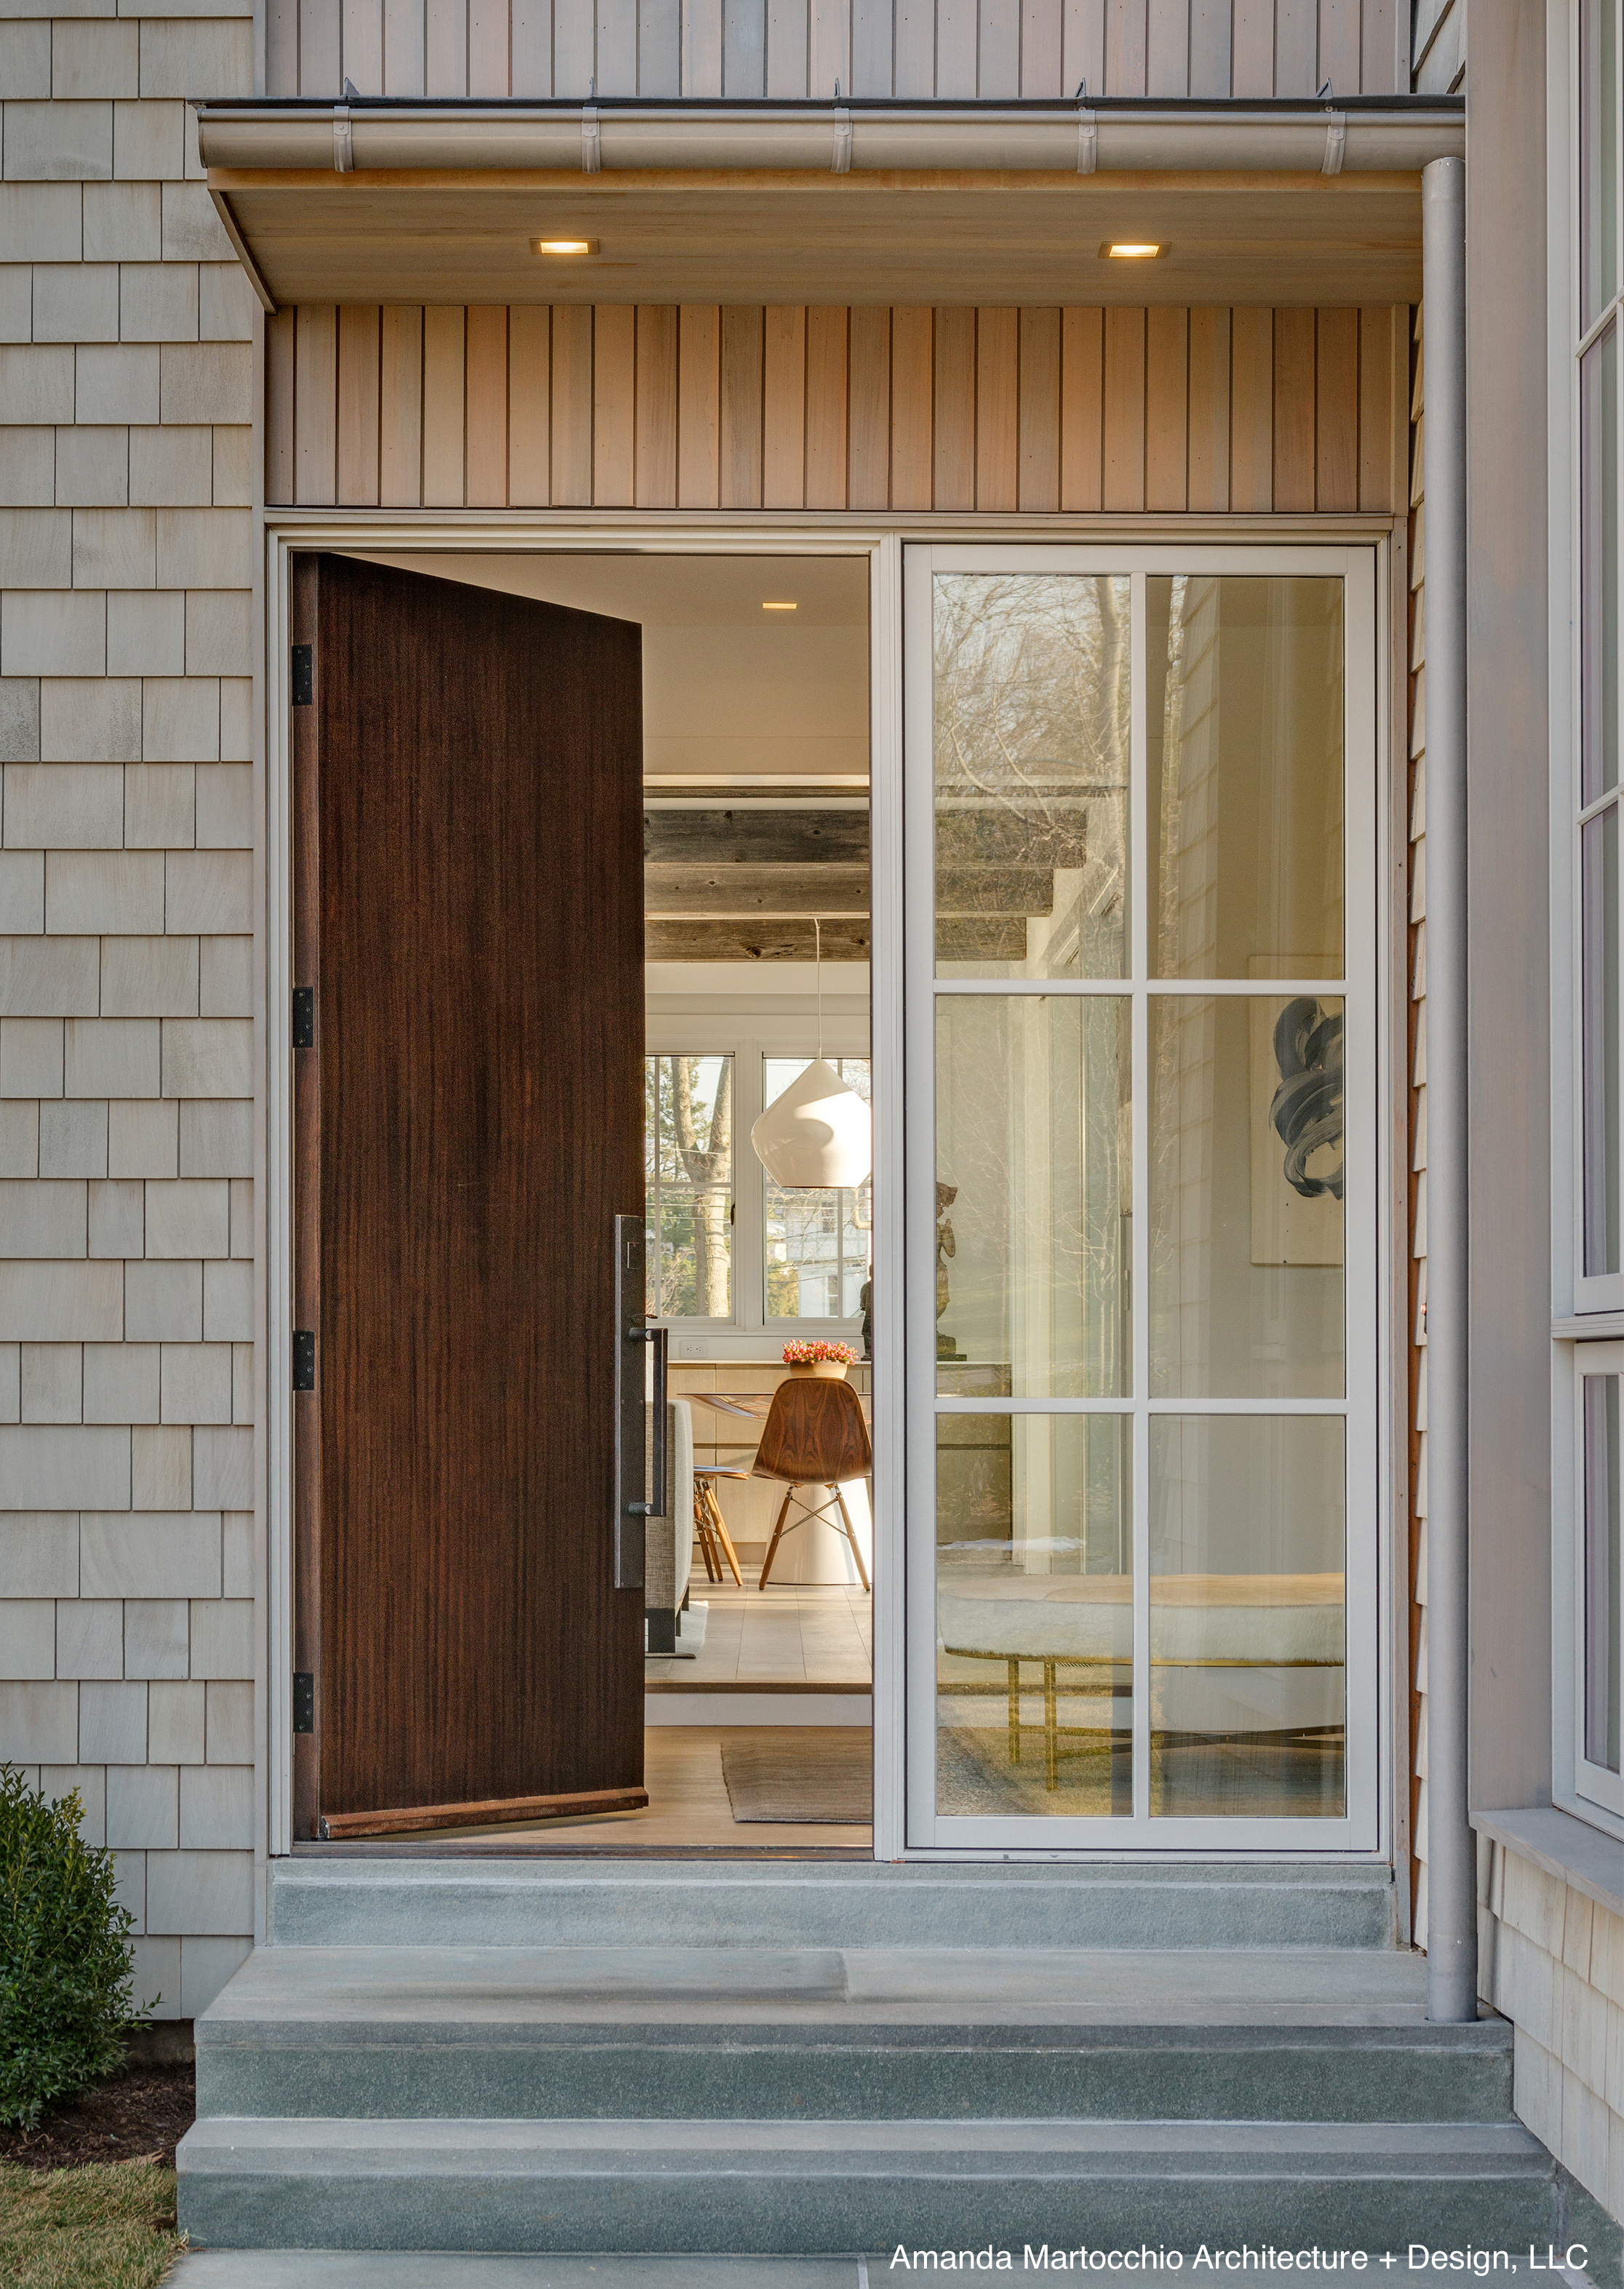 3-AMAD - Coves End Road - Exterior Front Door_Cropped.jpg